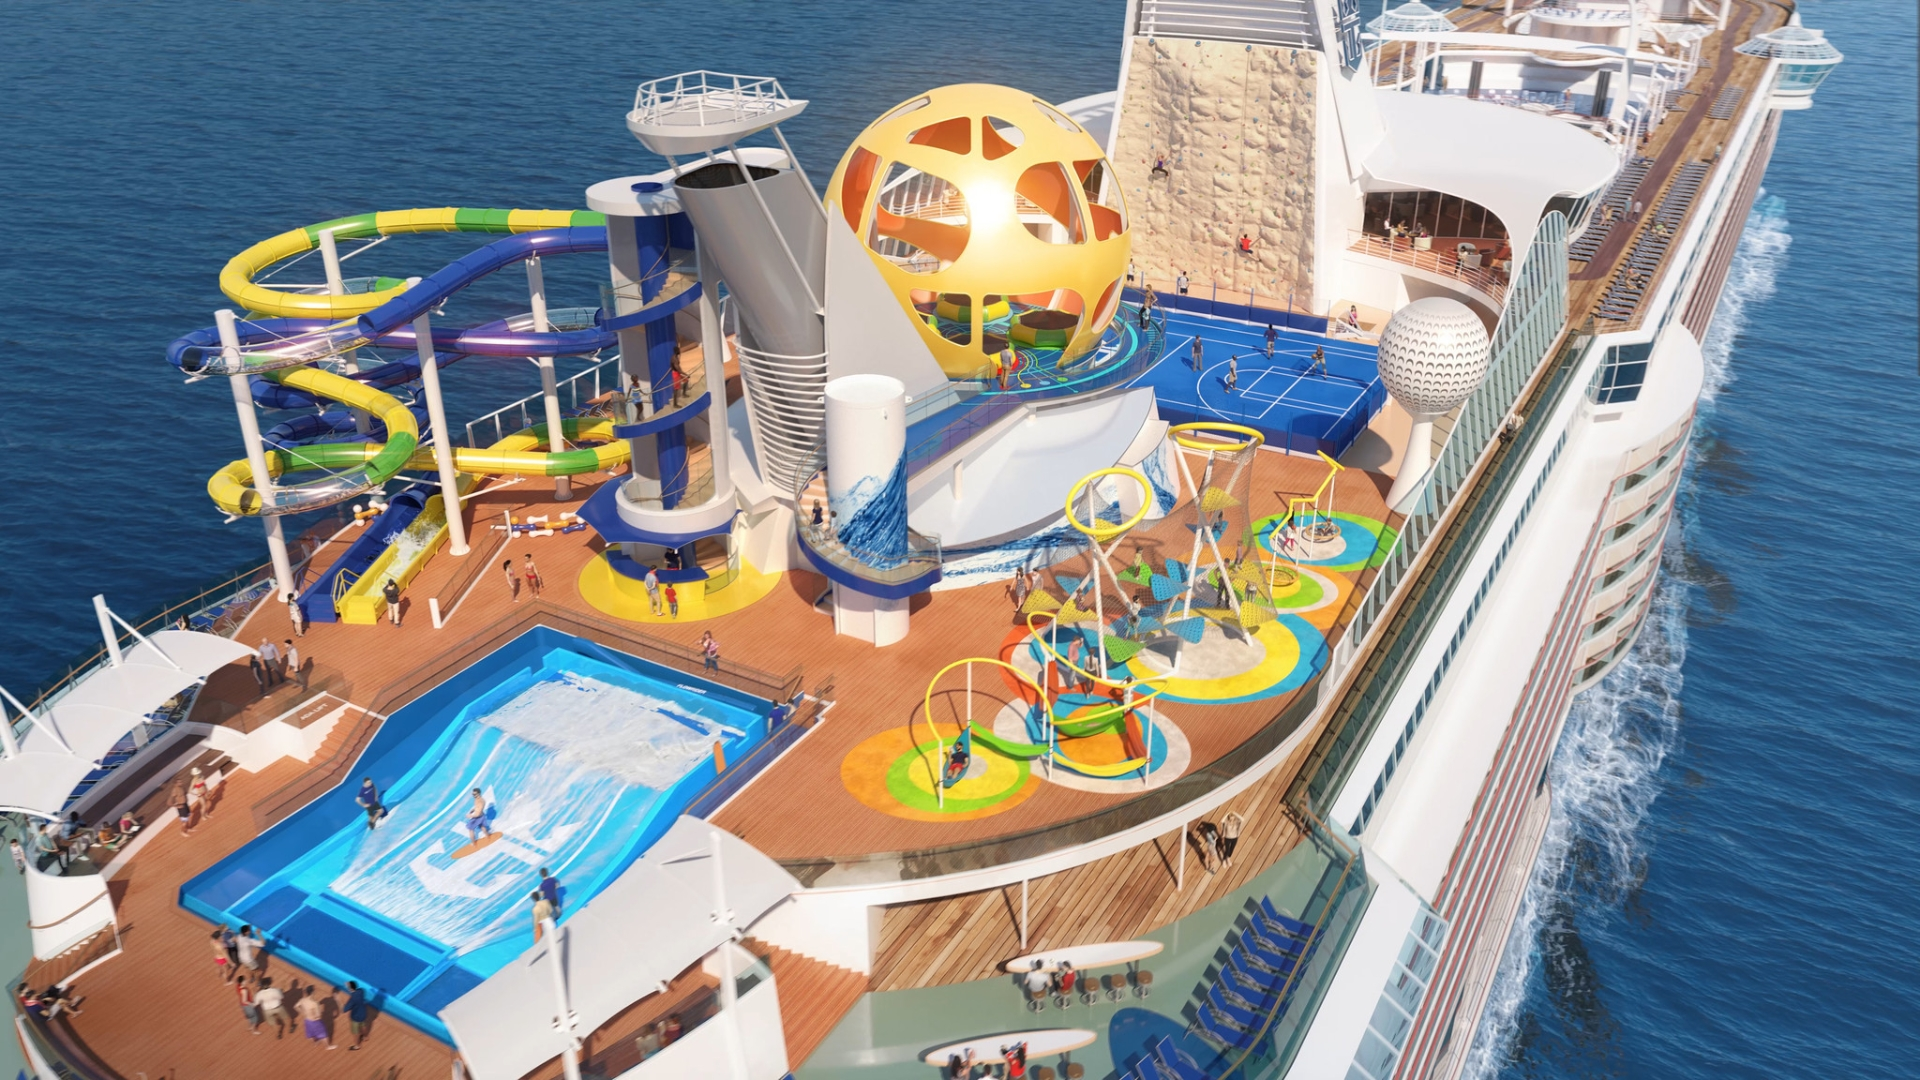 Royal Caribbean invests $120 million in one ship for short Bahamas